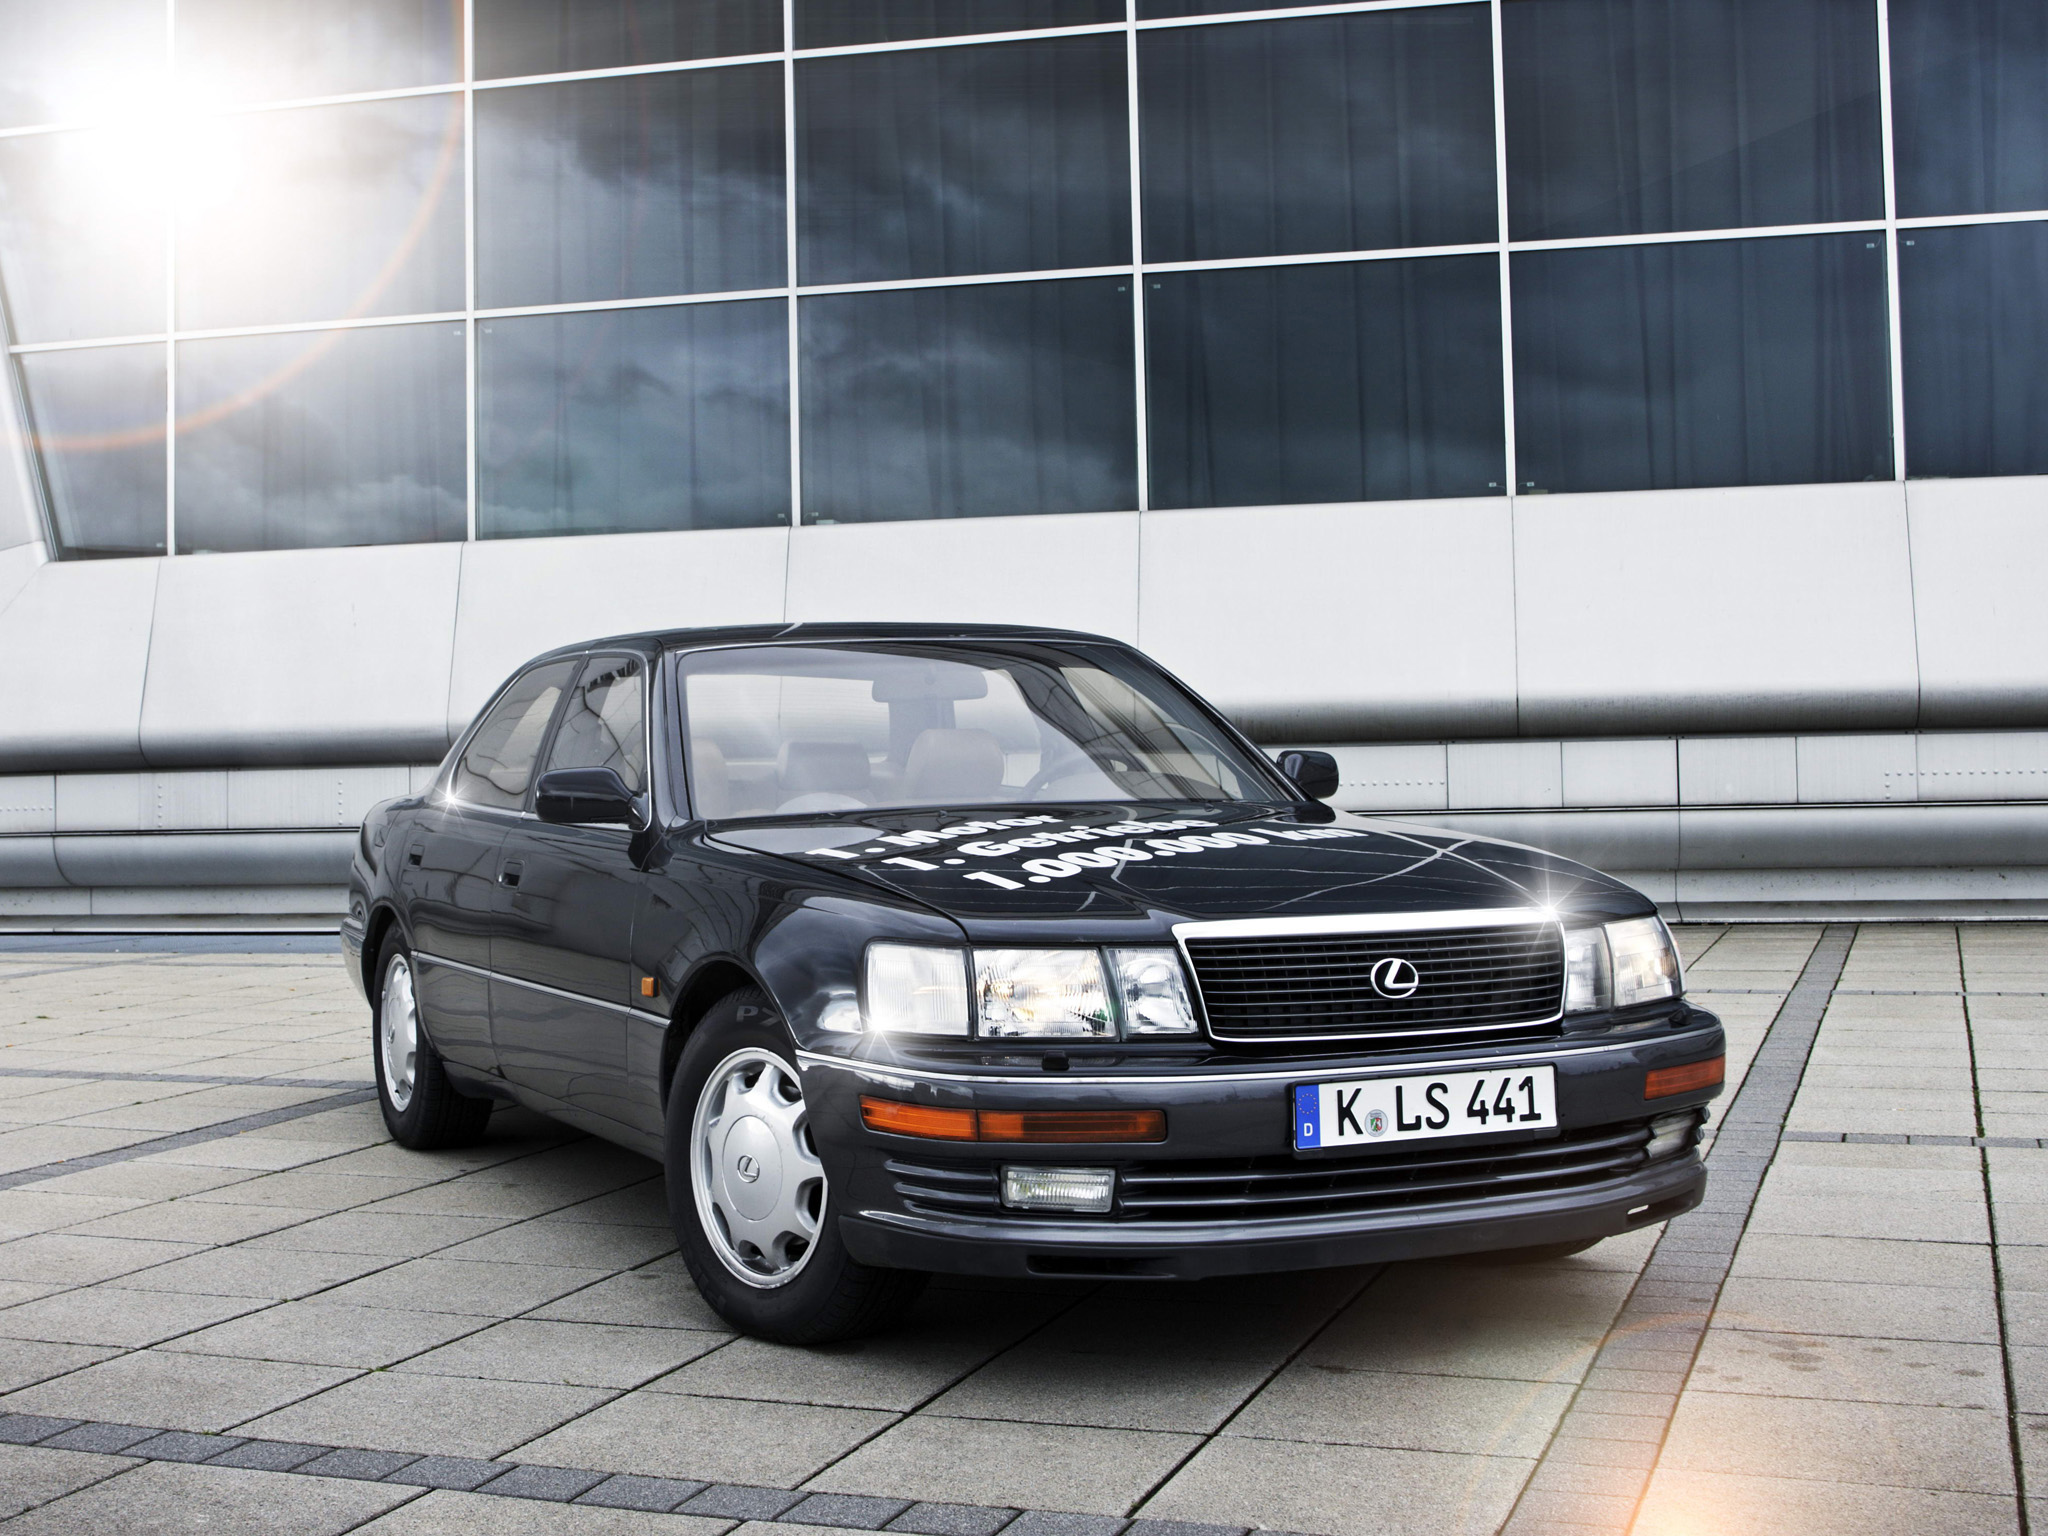 lexus ls 400 photos - photogallery with 5 pics| carsbase